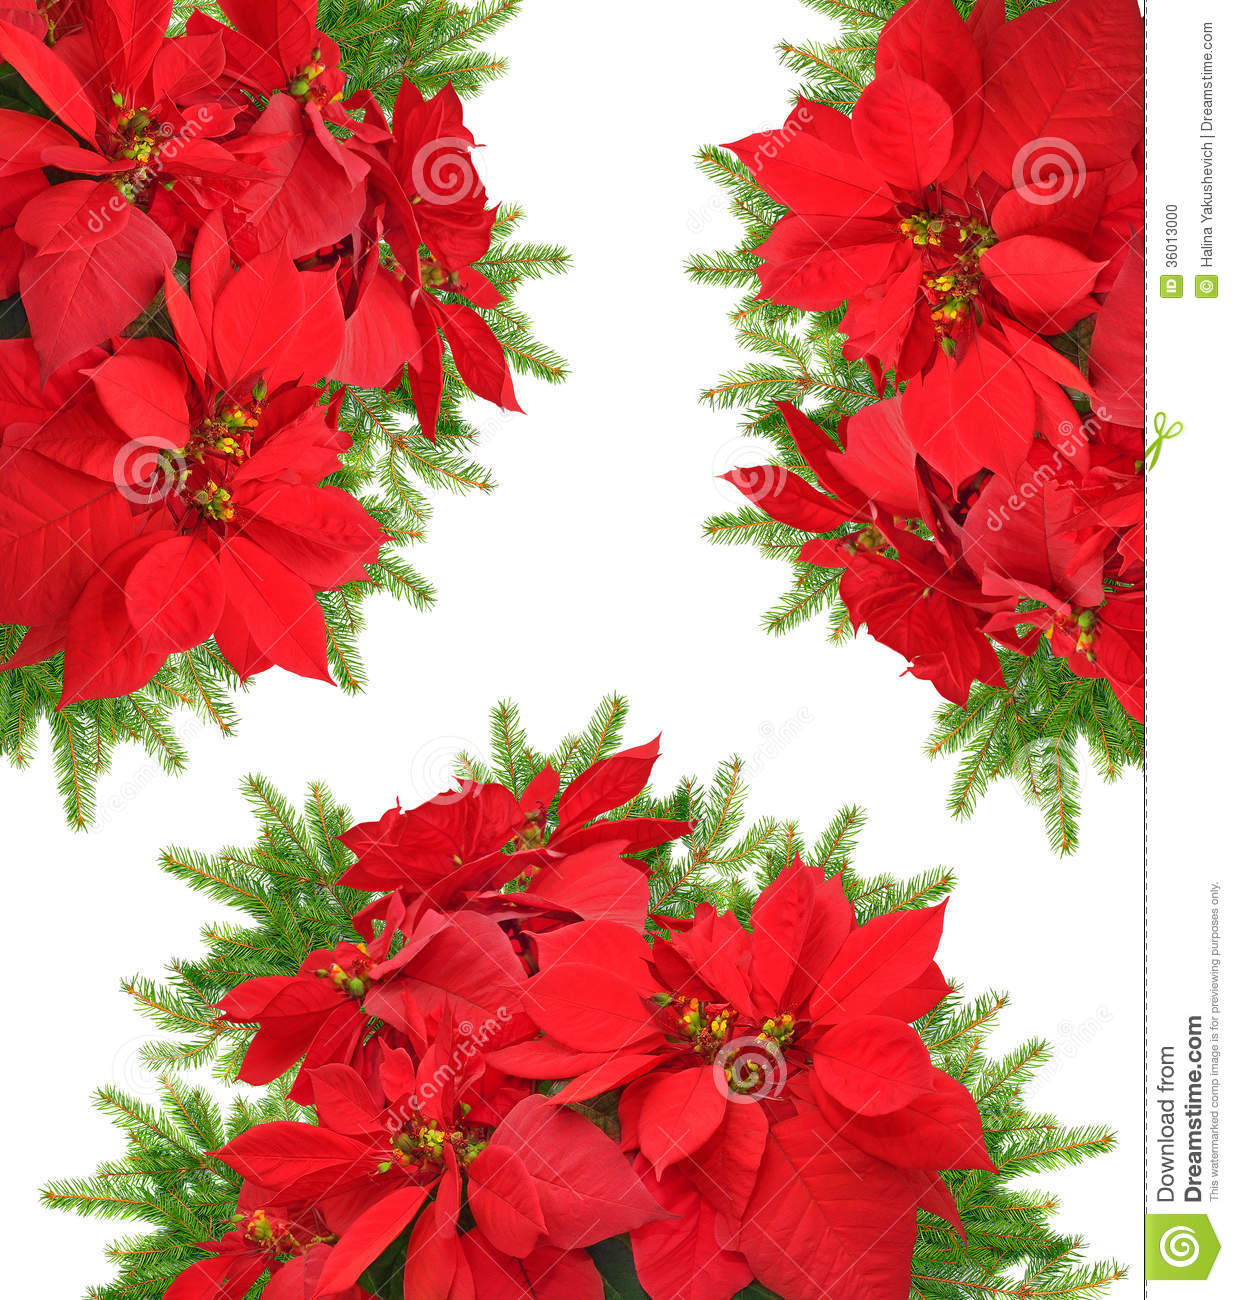 Red Poinsettia Flower With Beautiful Christmas Tree Branch